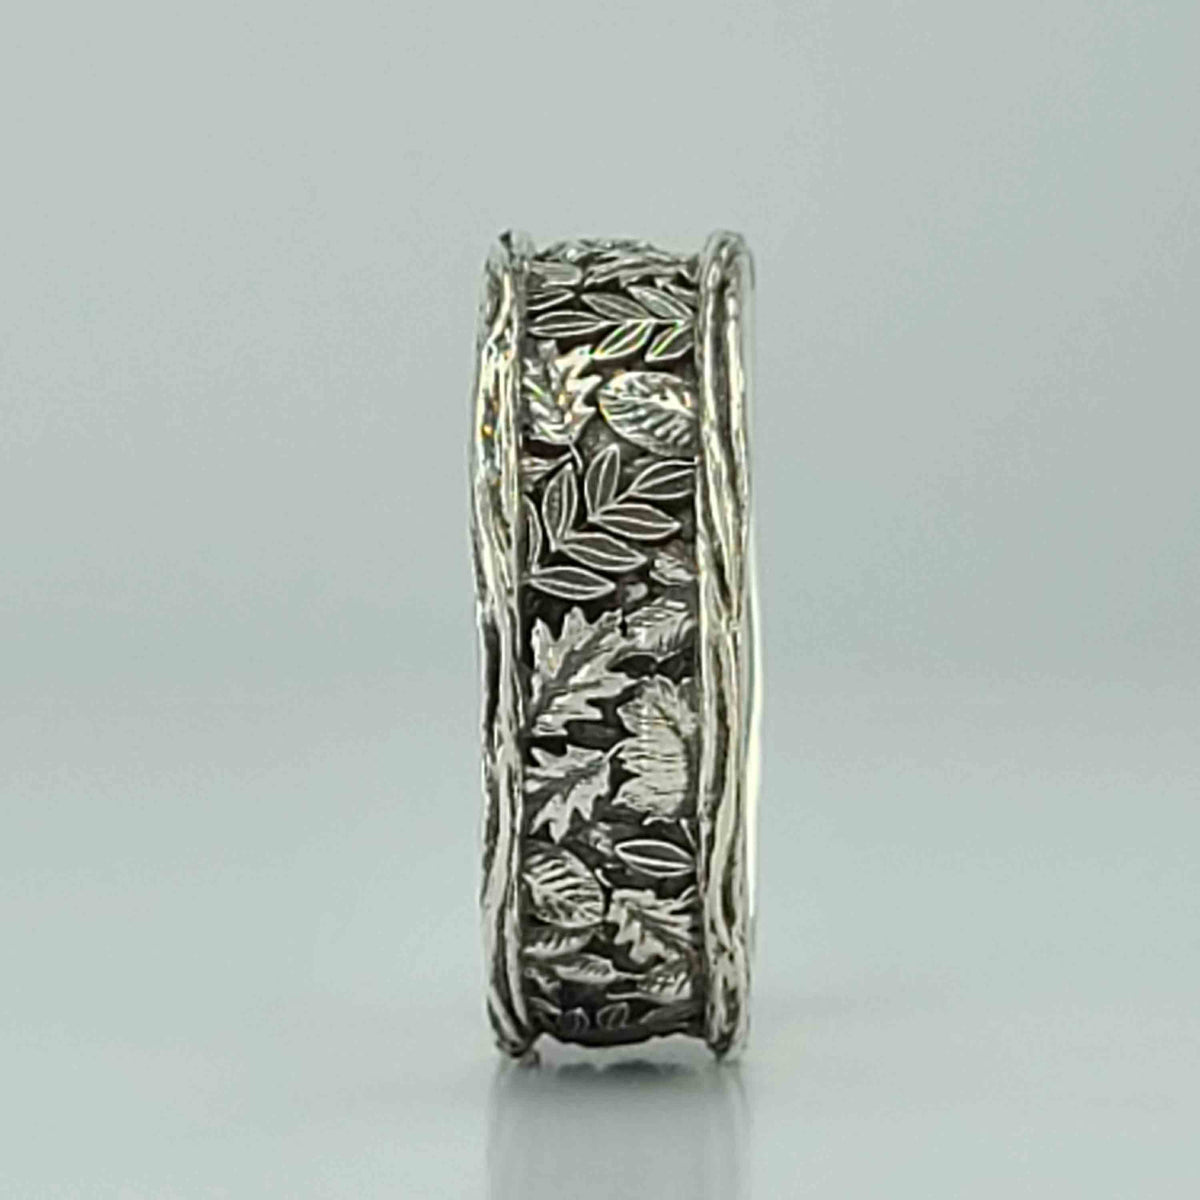 AUTUMN RUSTIC - 14KT $1699 Sterling $209